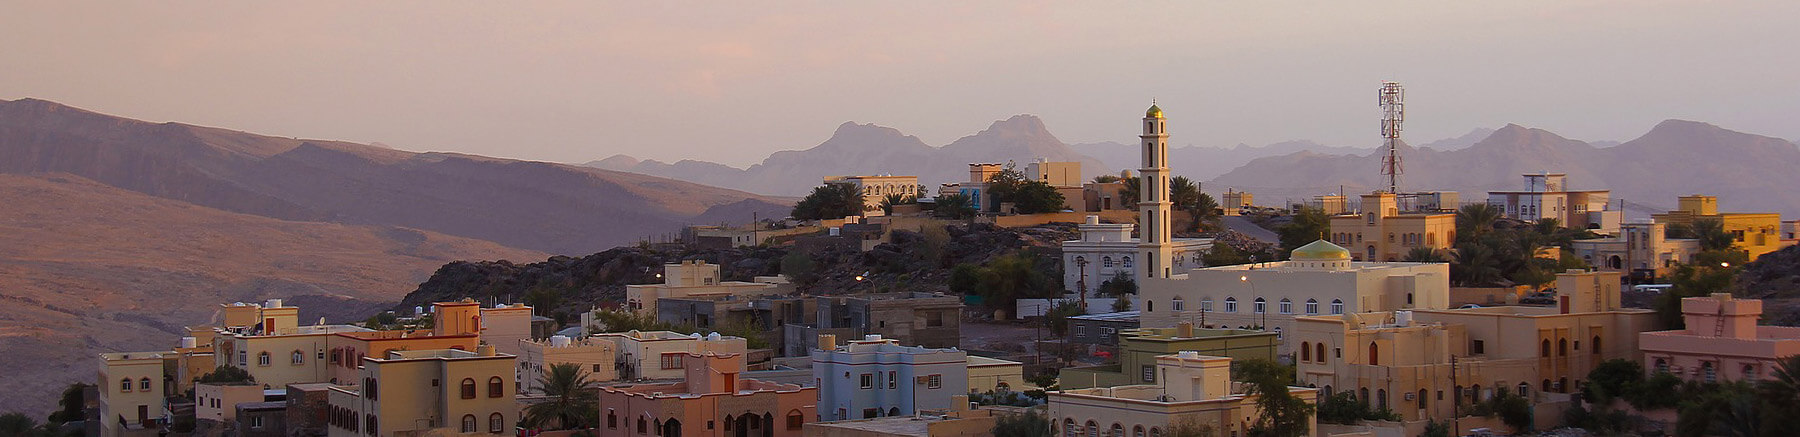 View of a city in the desert of Oman